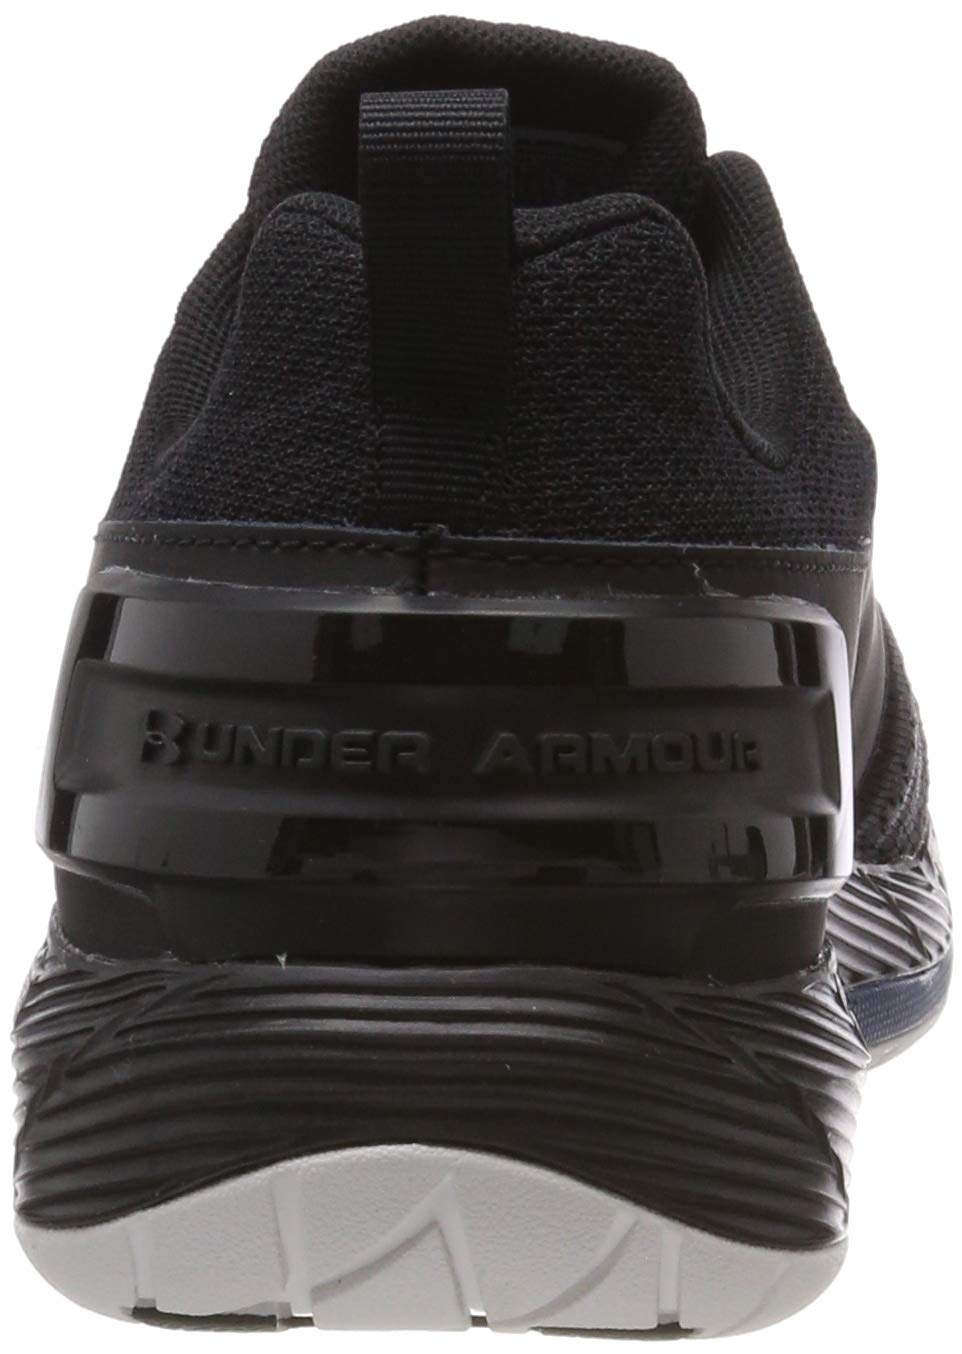 Under Armour Men's Commit TR EX Sneaker, Black (008)/Petrol Blue, 7.5 M US by Under Armour (Image #2)